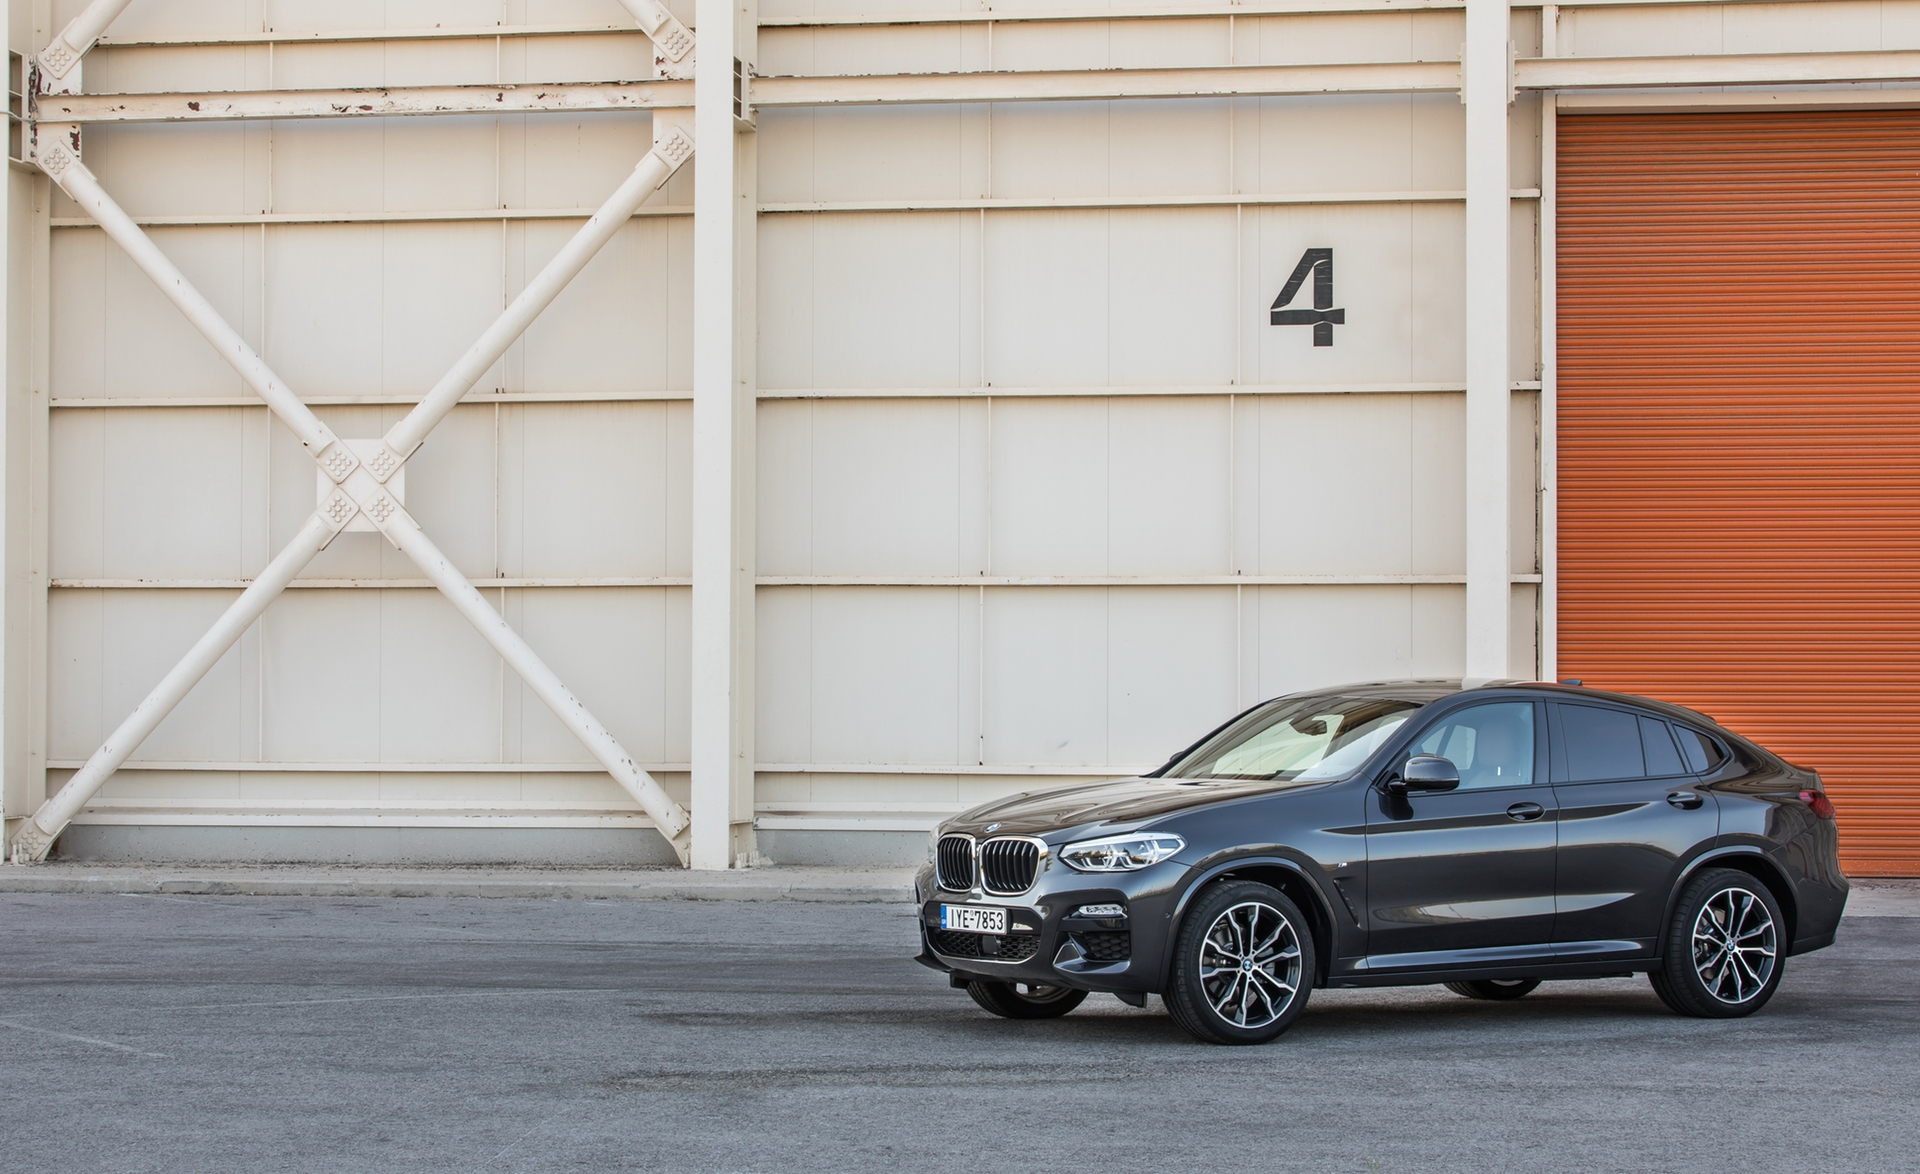 BMW_X4_greek_presskit_0045